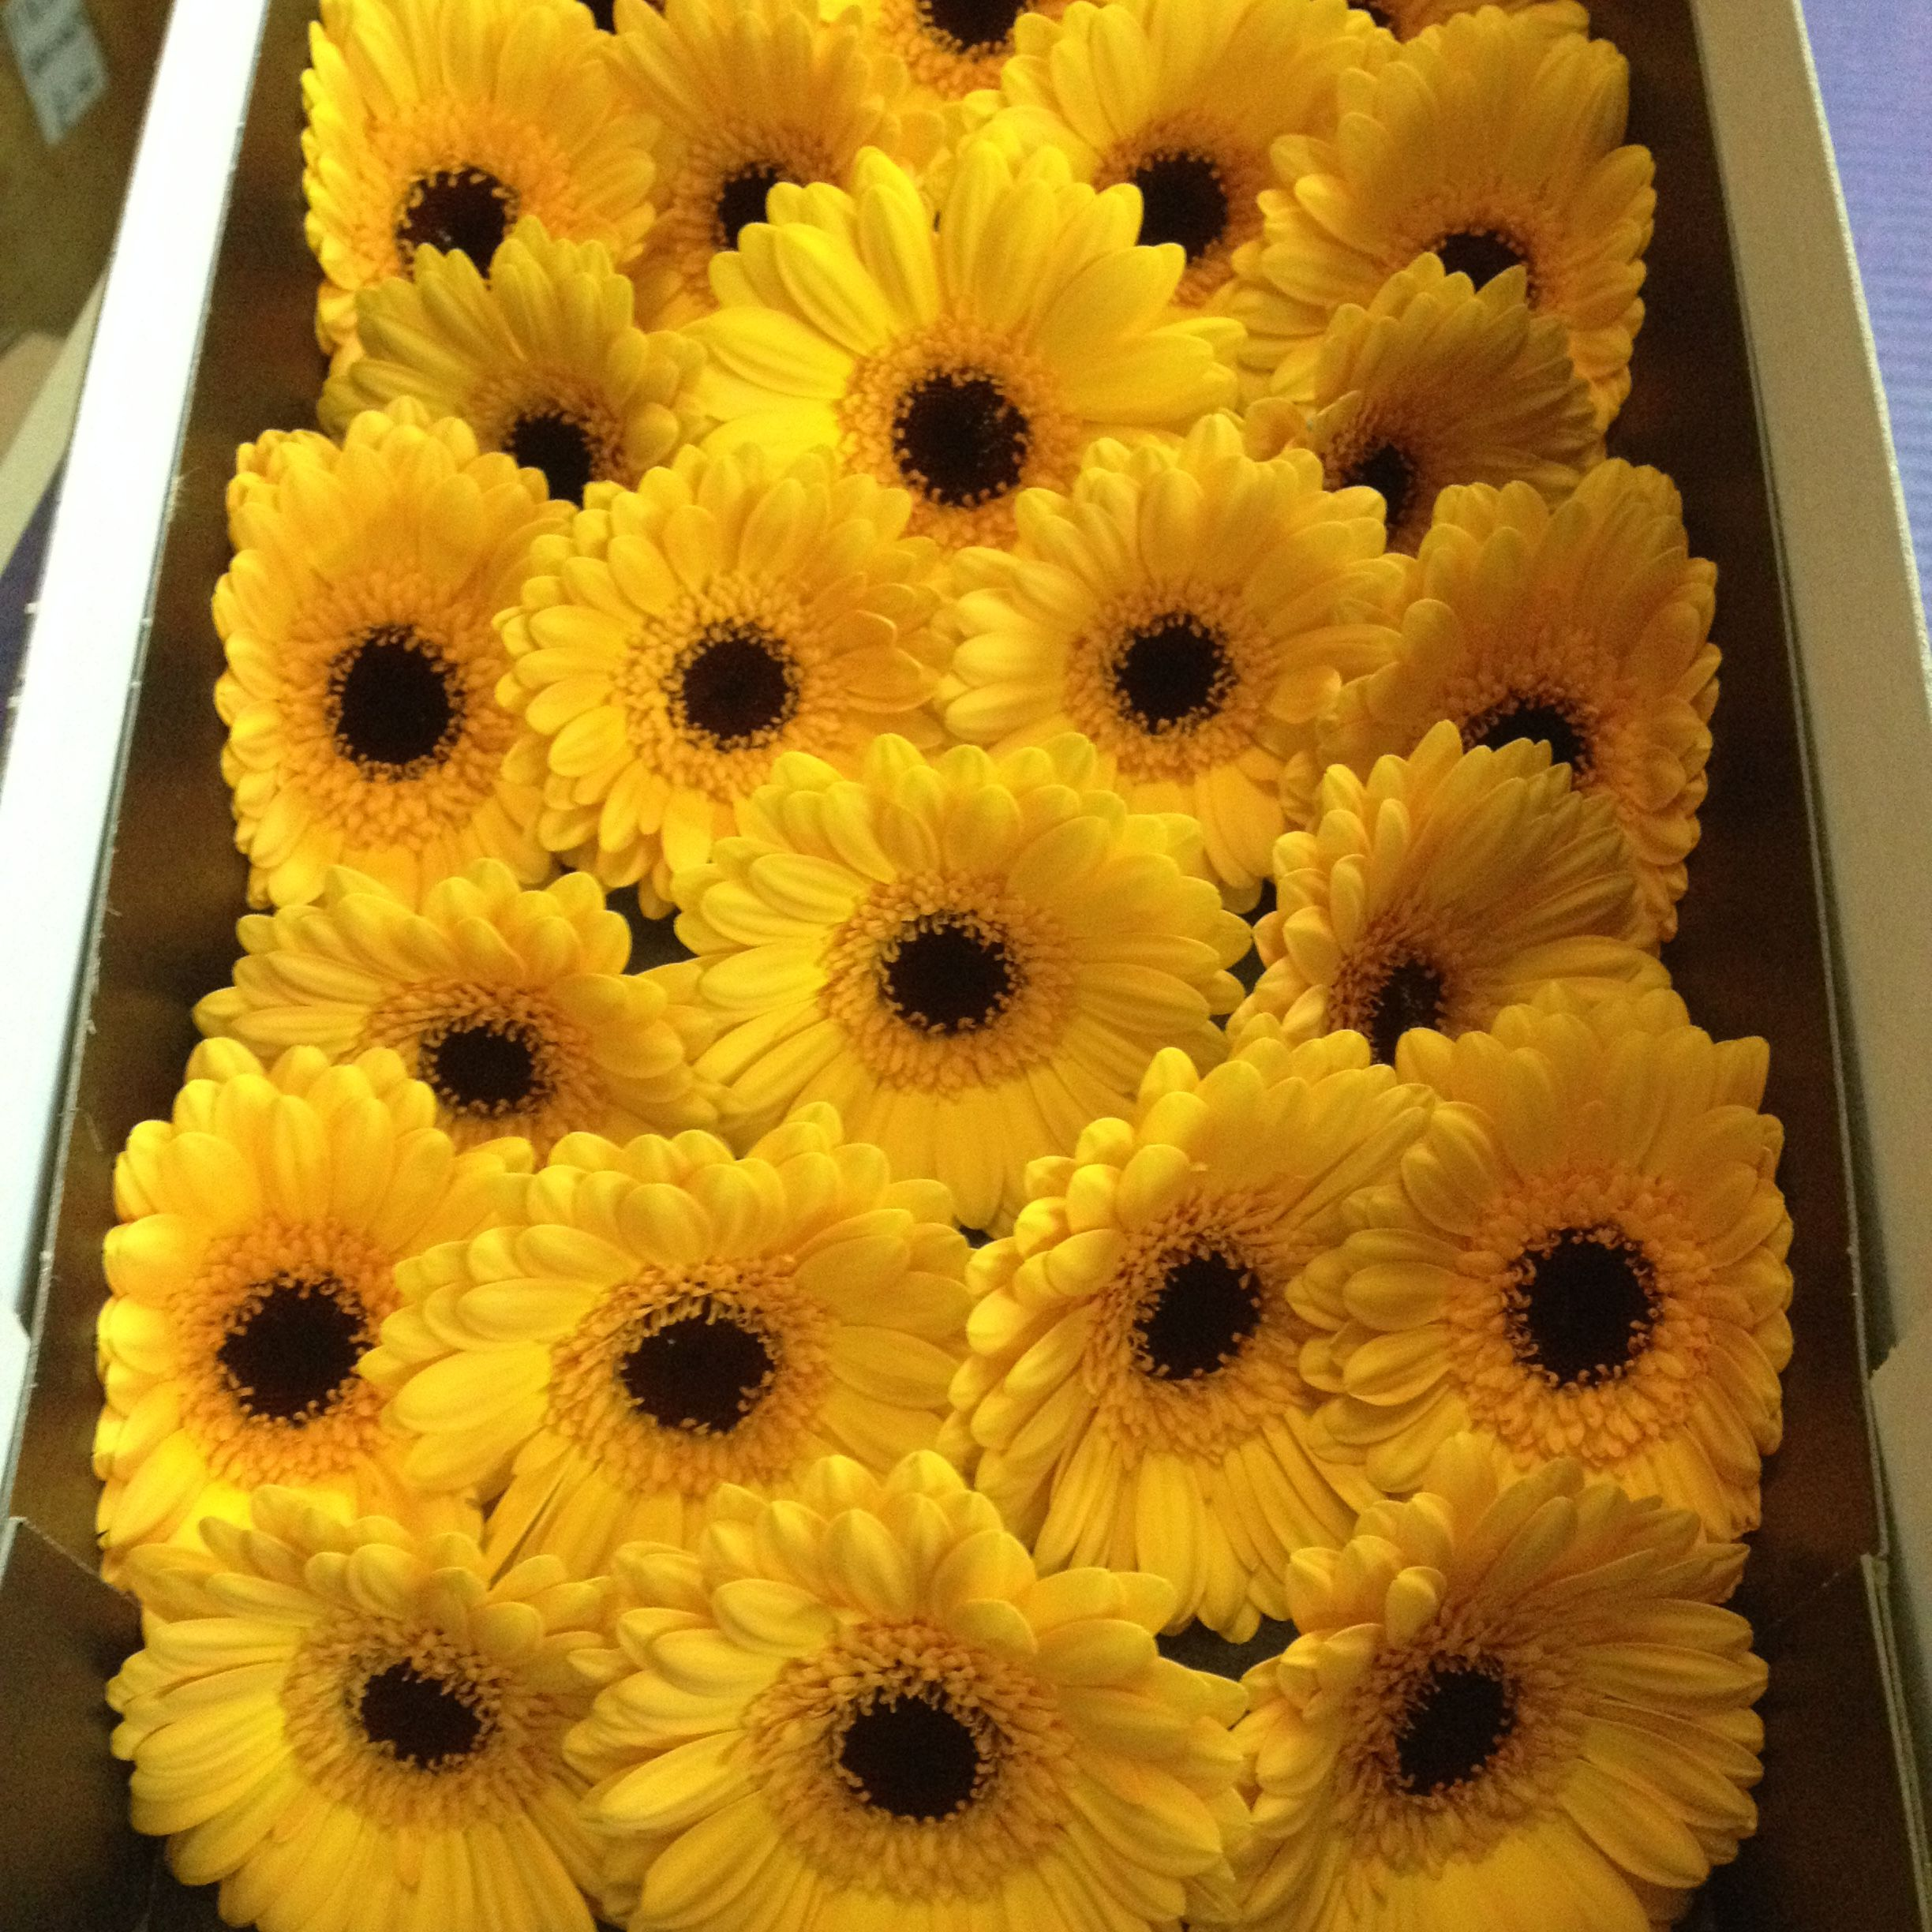 Wholesale Fresh Flowers for DIY weddings and events